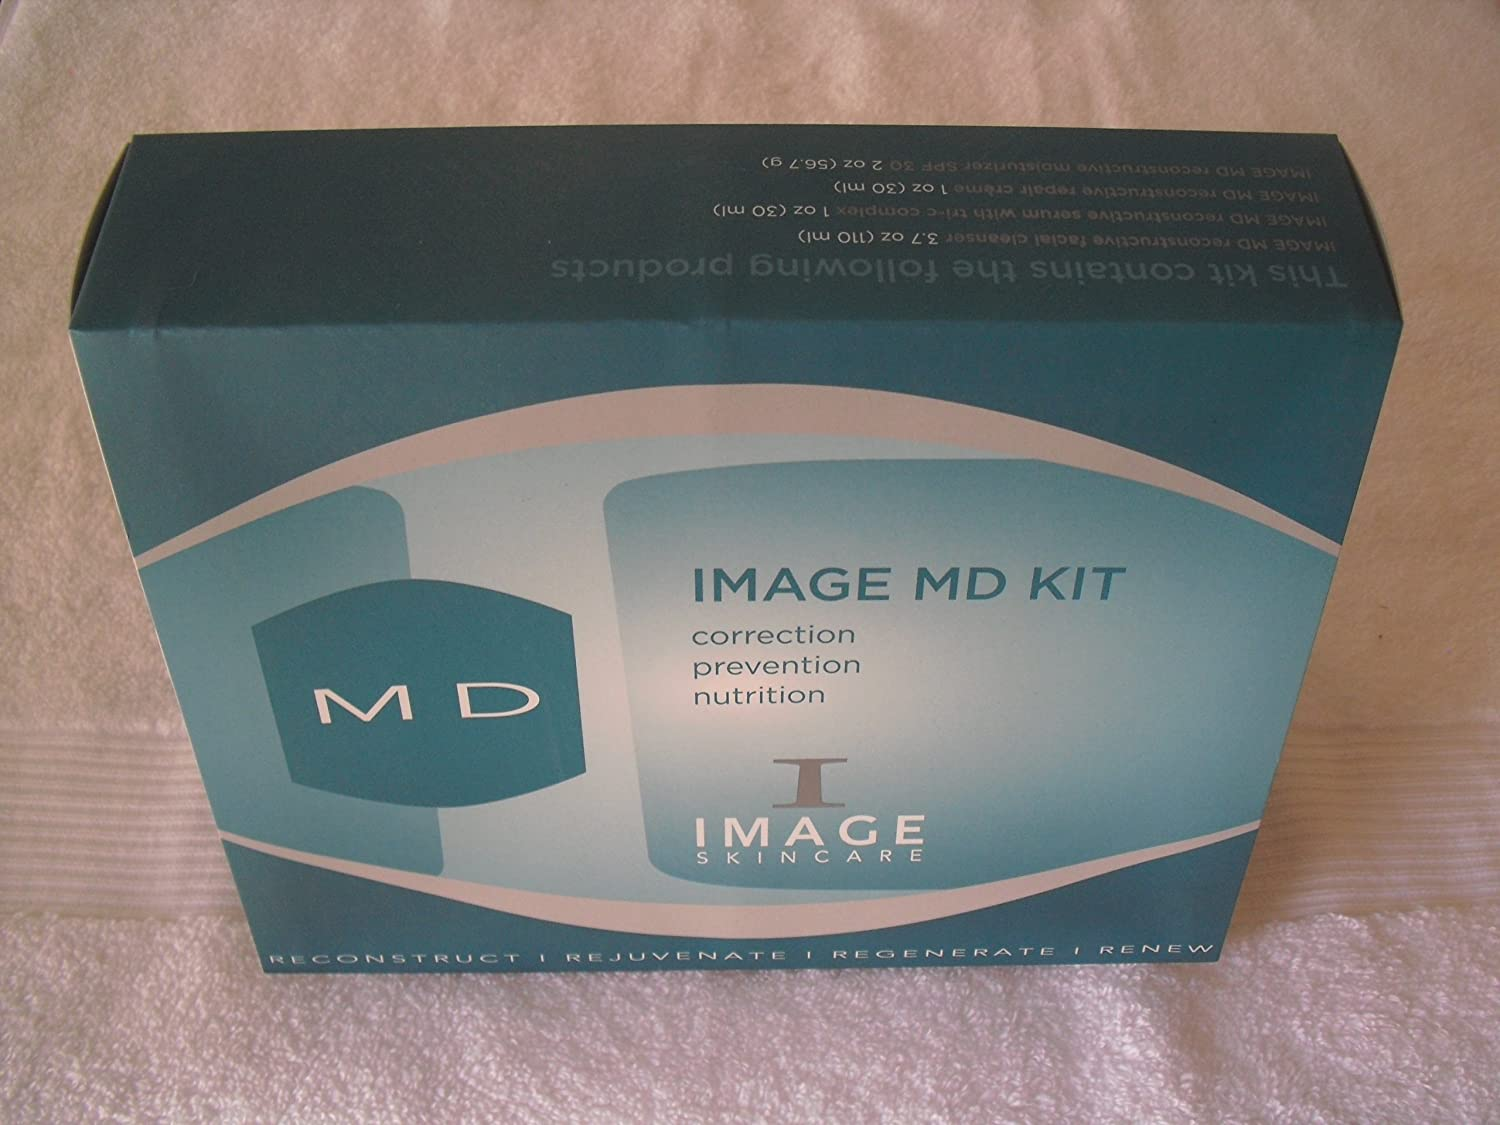 Image MD Kit goodwind anti wrinkle beauty health skin care face skin rejuvenation red led skin rejuvenation photon treatment skin care